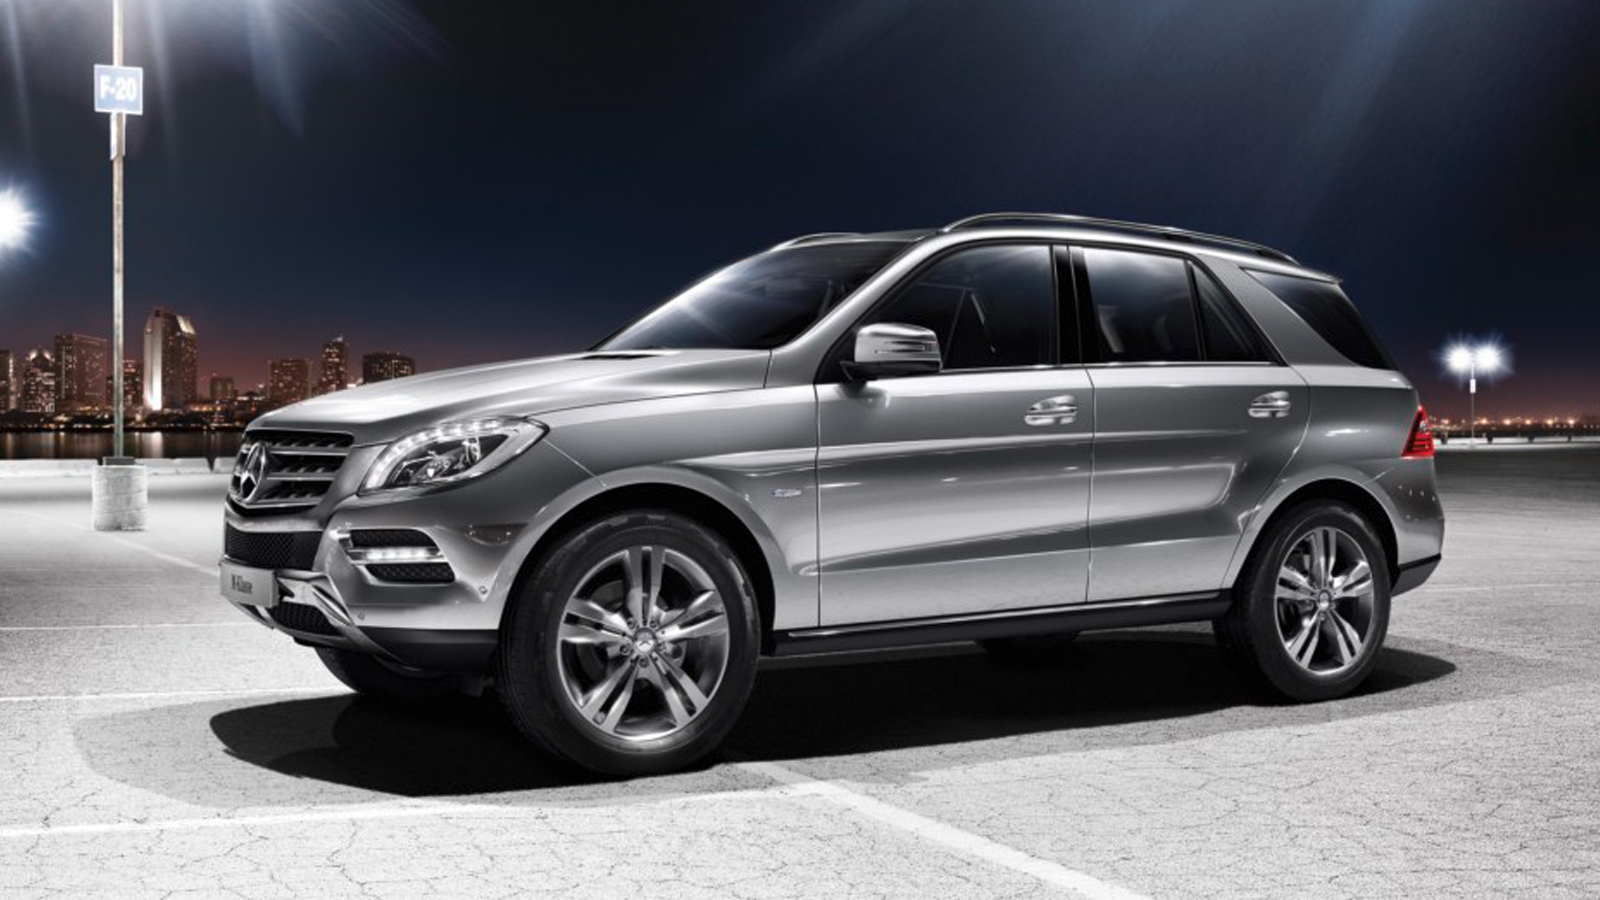 Car wallpapers free download 2013 mercedes benz ml 500 for 2013 mercedes benz ml